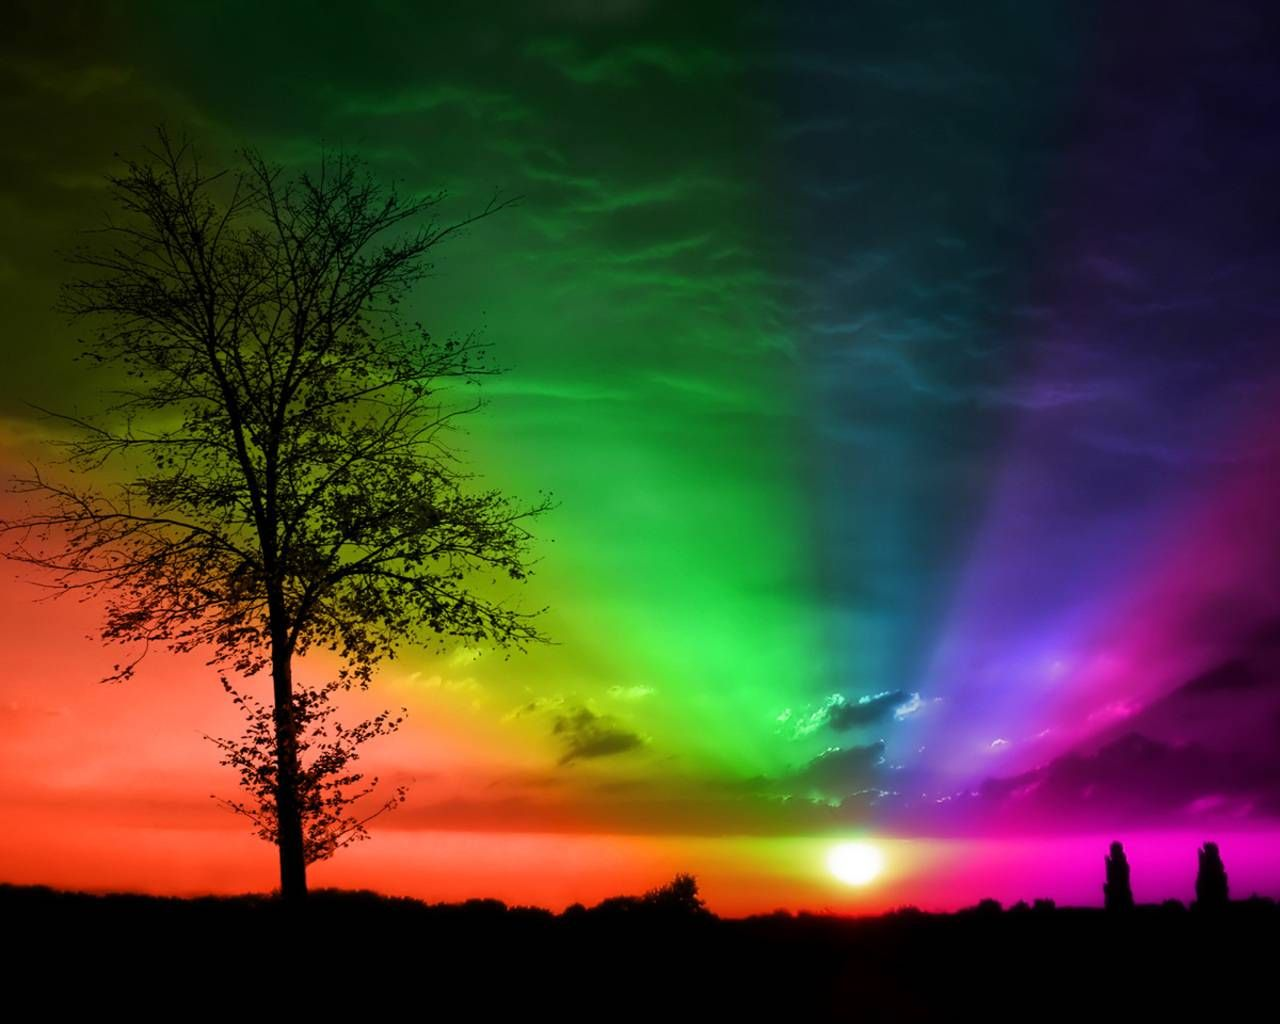 Colorful Nature Photography Hd Cool 7 Hd Wallpapers Sunset Wallpaper Rainbow Sunset Wallpaper Backgrounds